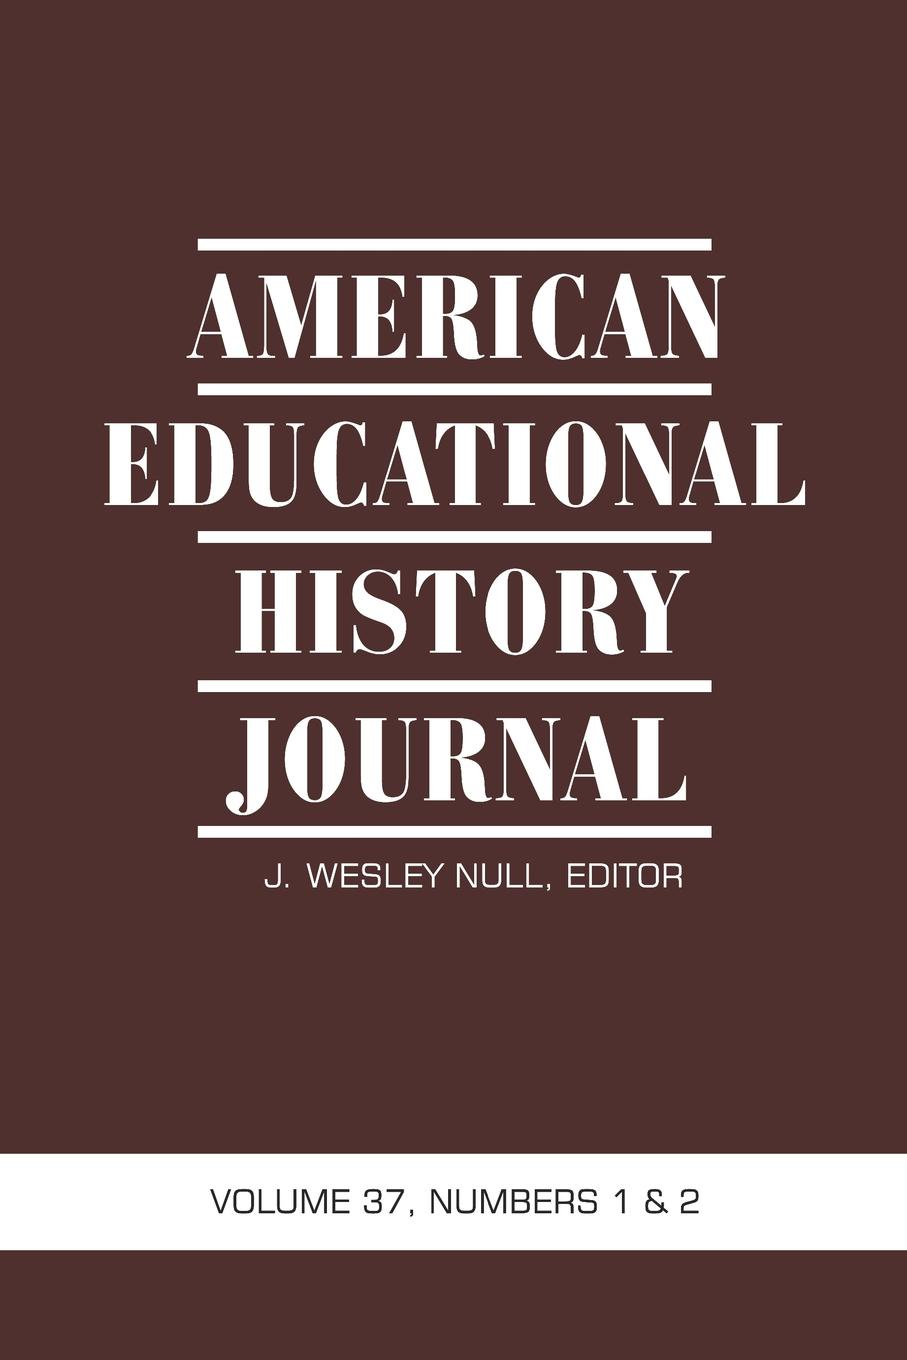 American Educational History Journal VOLUME 37, NUMBER 1 . 2 2010 (PB) the sojo journal educational foundations and social justice education volume 1 number 1 2015